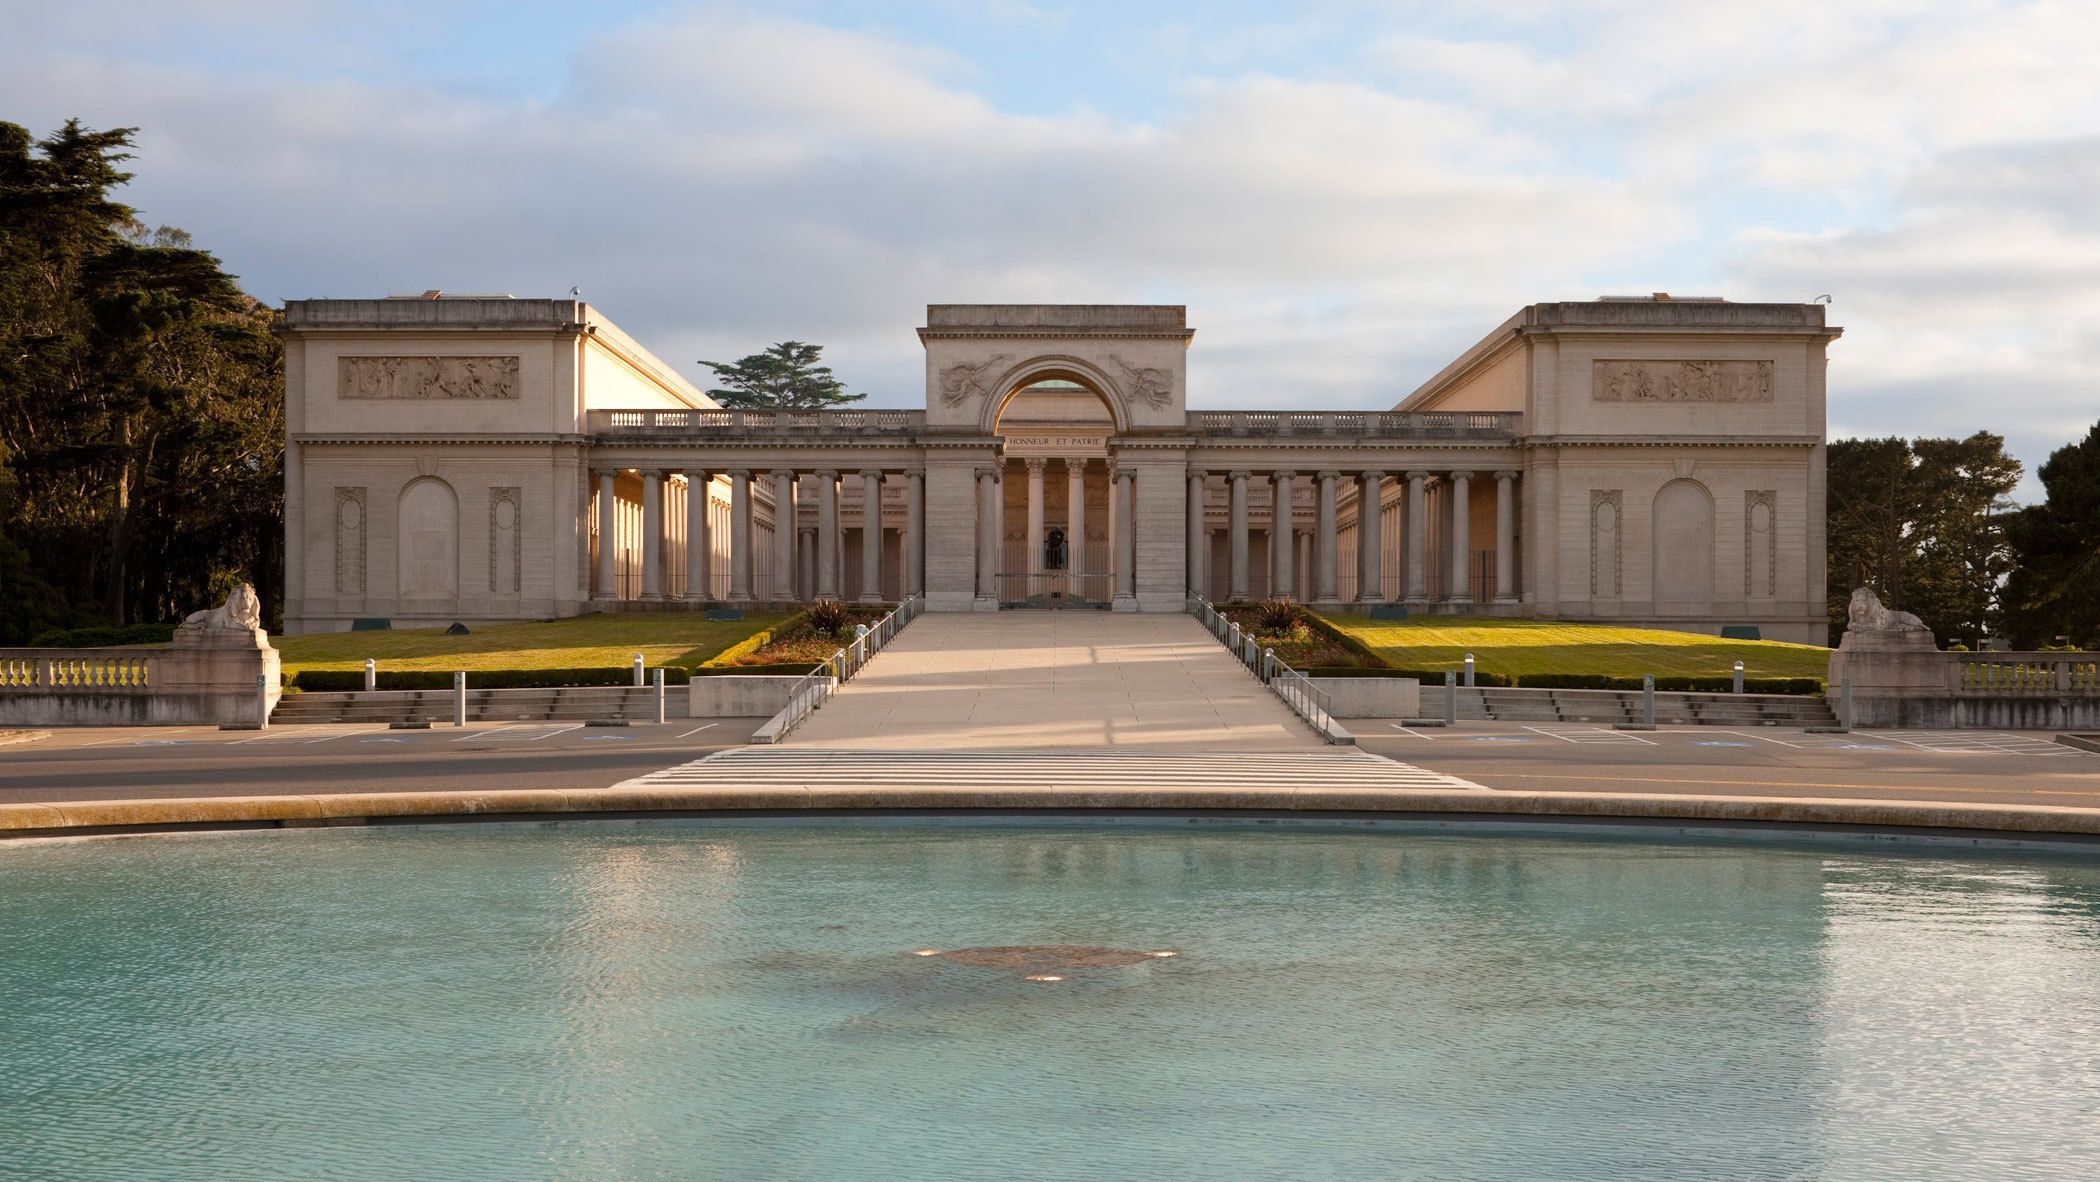 Landscape view of Legion of Honor in San Francisco